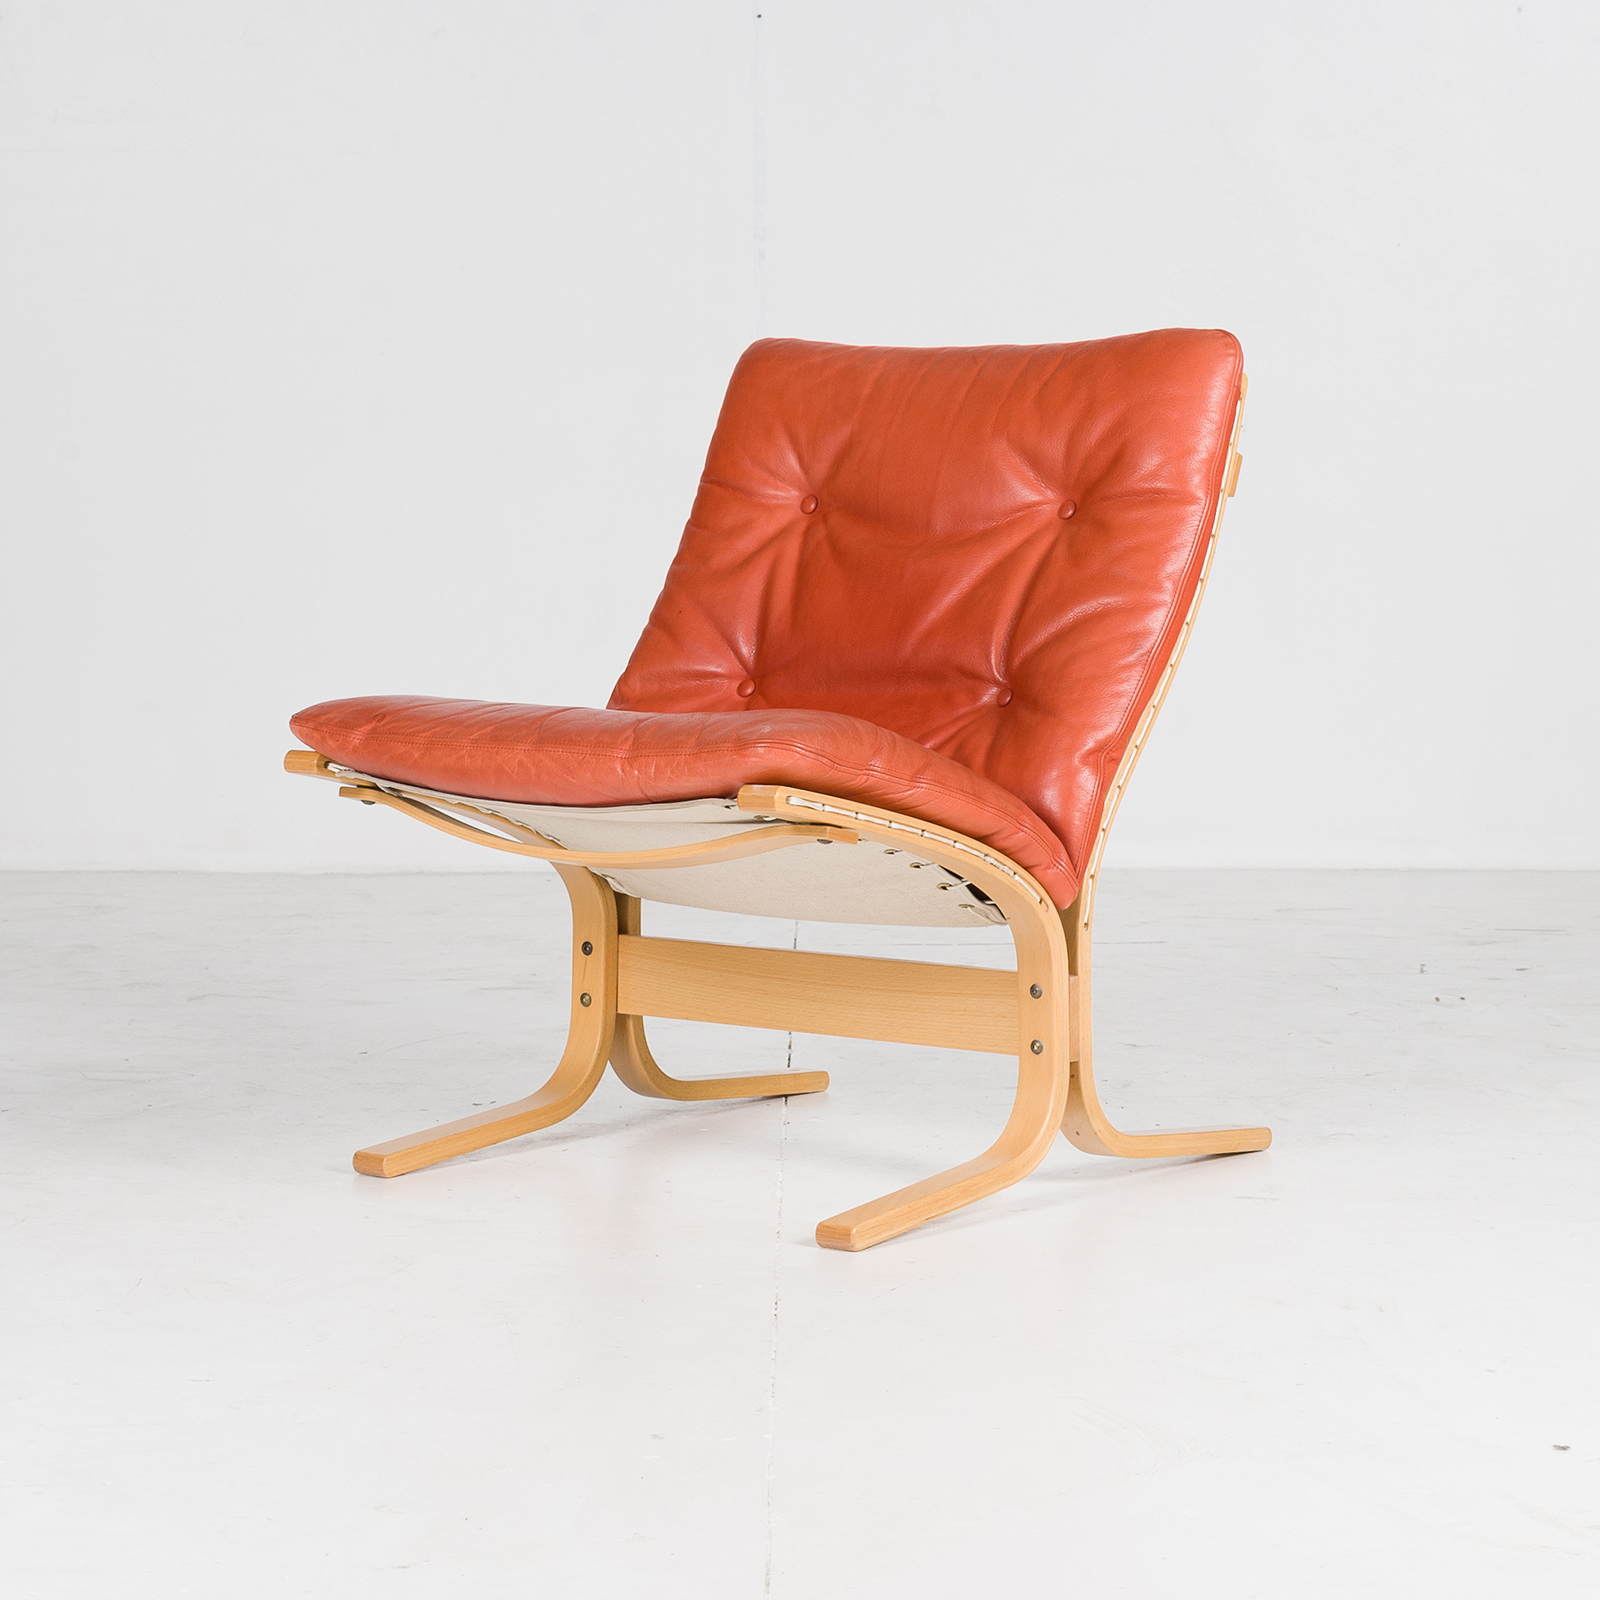 Low Back Siesta Armchair By Ingmar Relling In Tangerine Leather, 1960s, Netherlands66